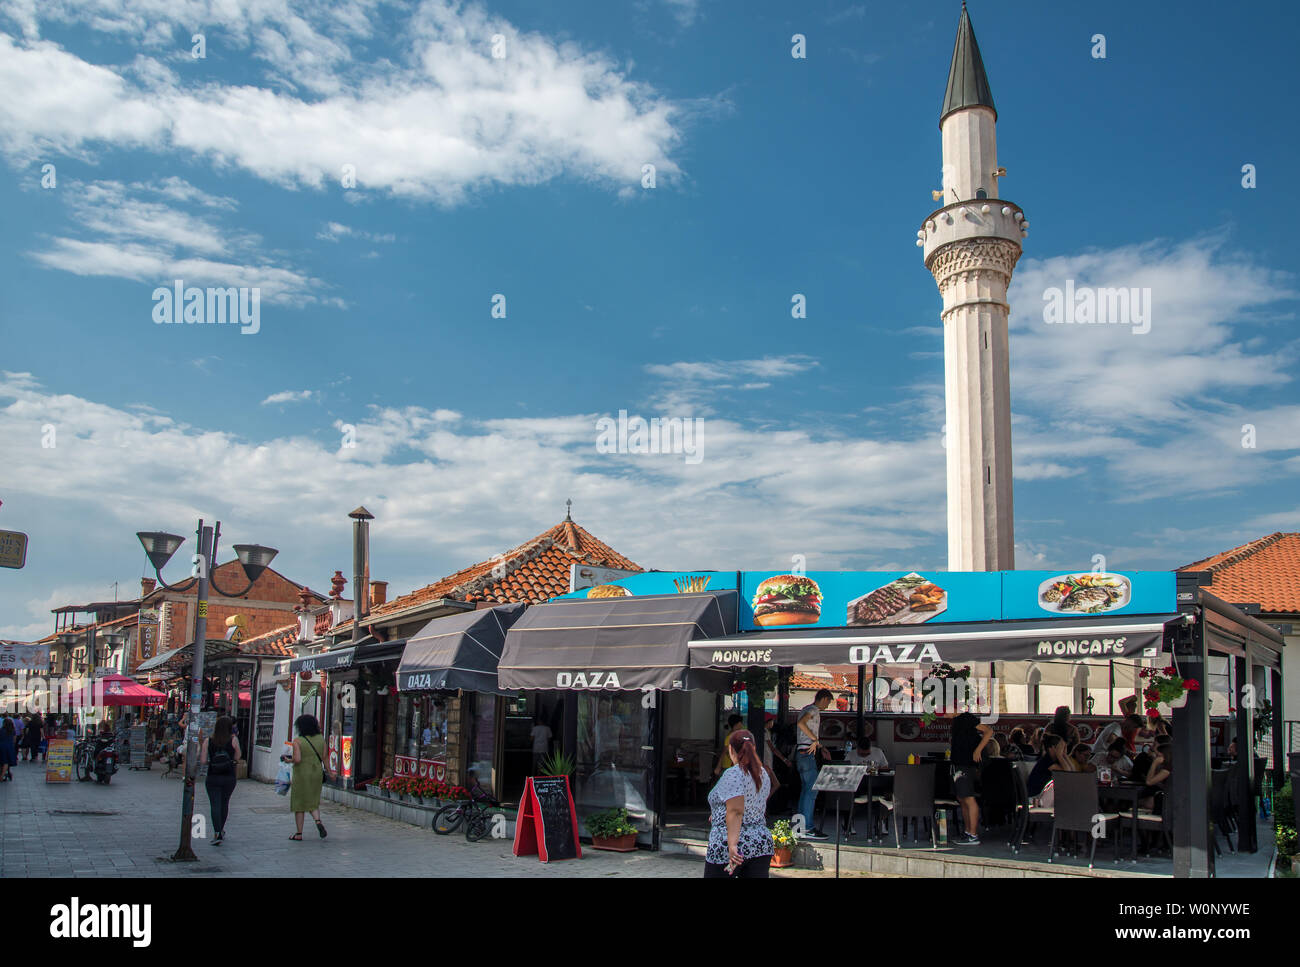 OHRID,MACEDONIA-AUGUST 31,2018:Fast food eaterie at Piazza della Fontana featuring the Ali Pasha Mosque, Cami - Stock Image